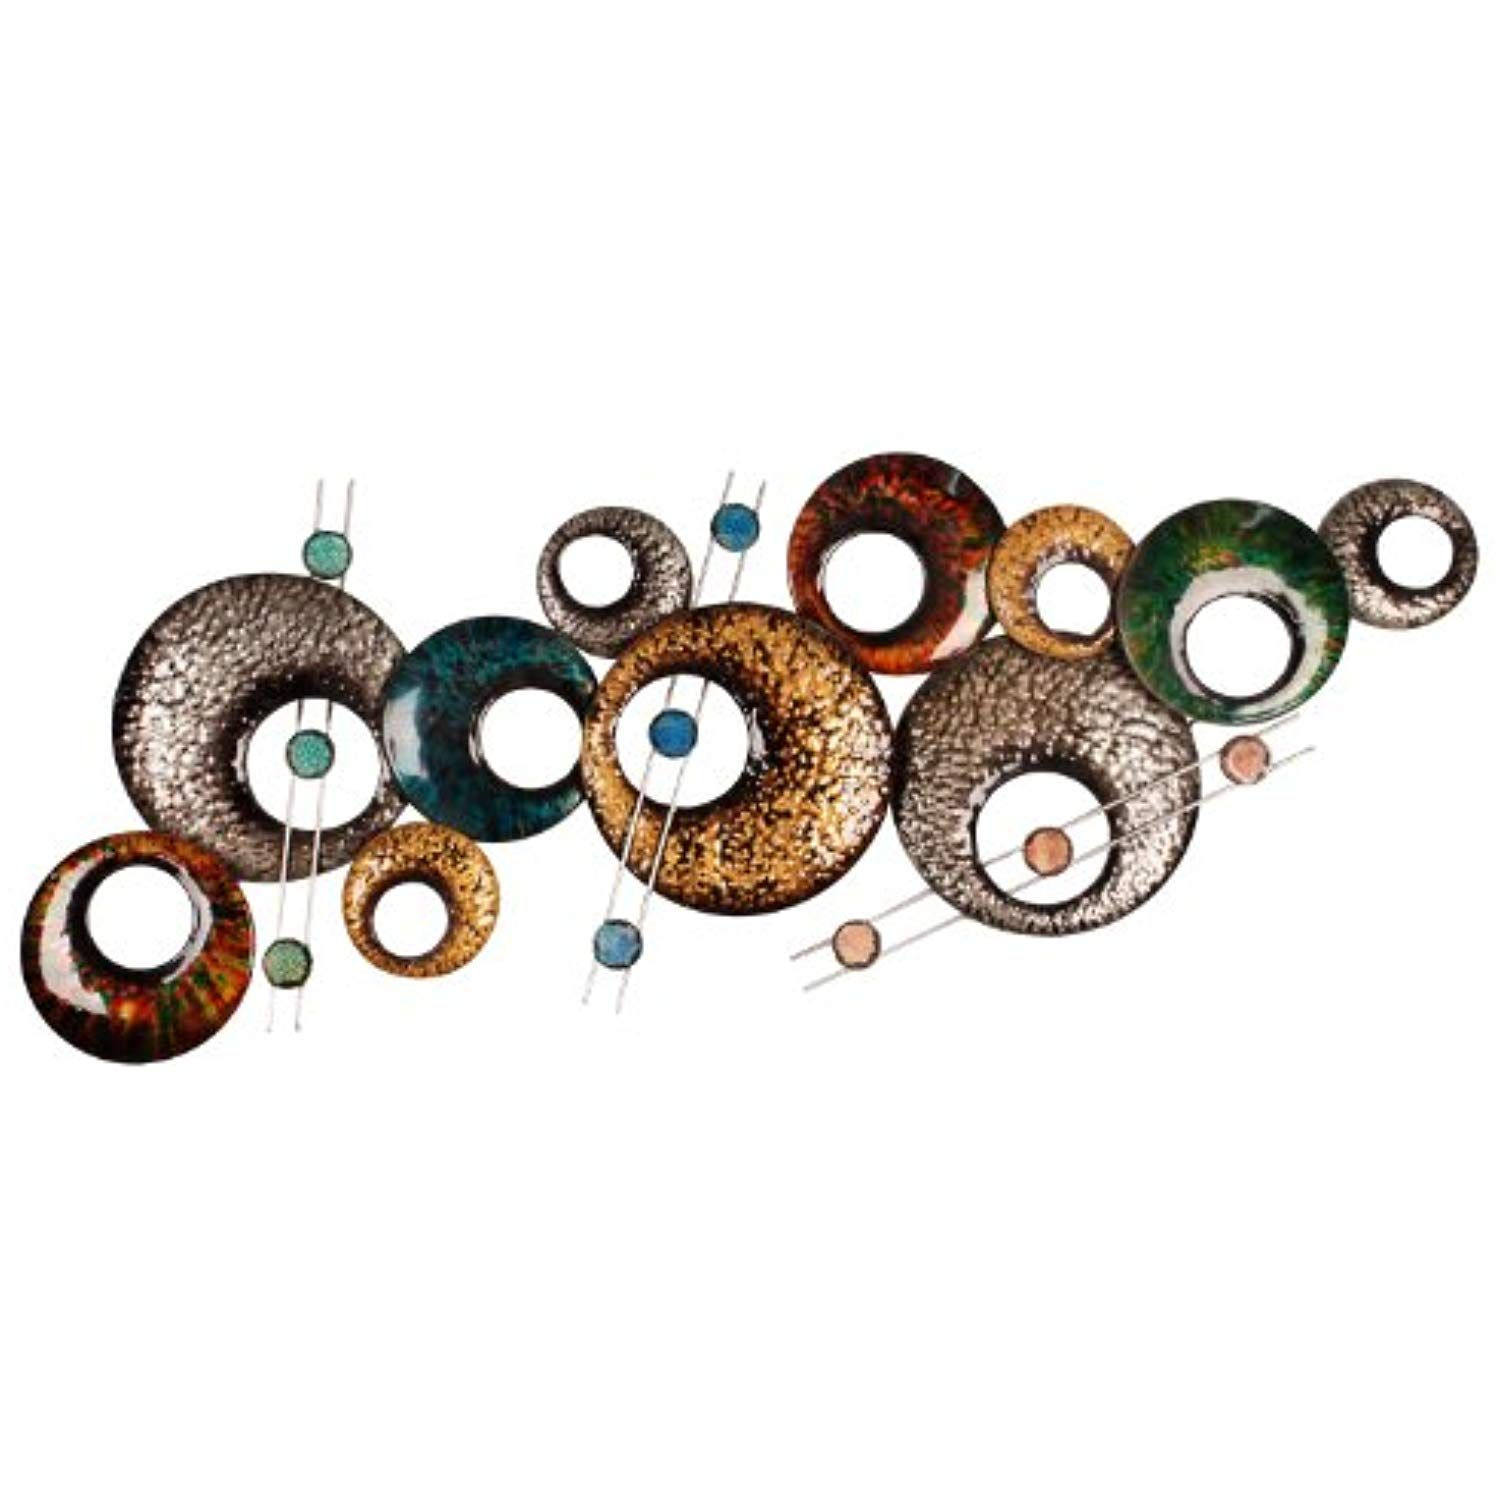 Home Source 400 26895 Decorative Wall Art 40 95 Inch By 15 35 Inch By 1 77 Inch Be Sure To Check Out Metal Wall Decor Metal Wall Sculpture Wall Sculptures